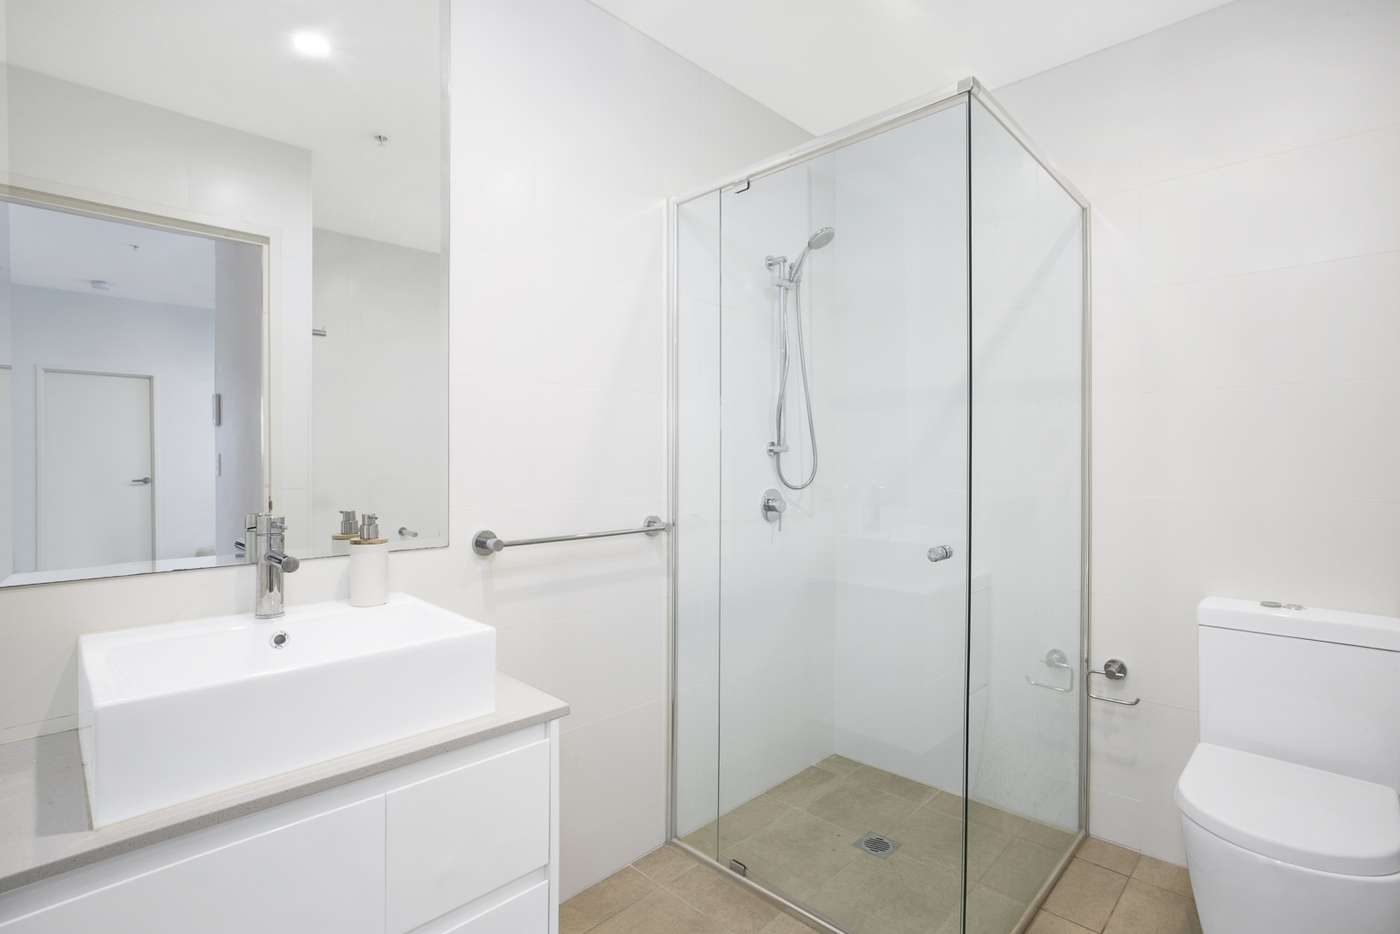 Fifth view of Homely unit listing, 306/2 Good Street, Westmead NSW 2145